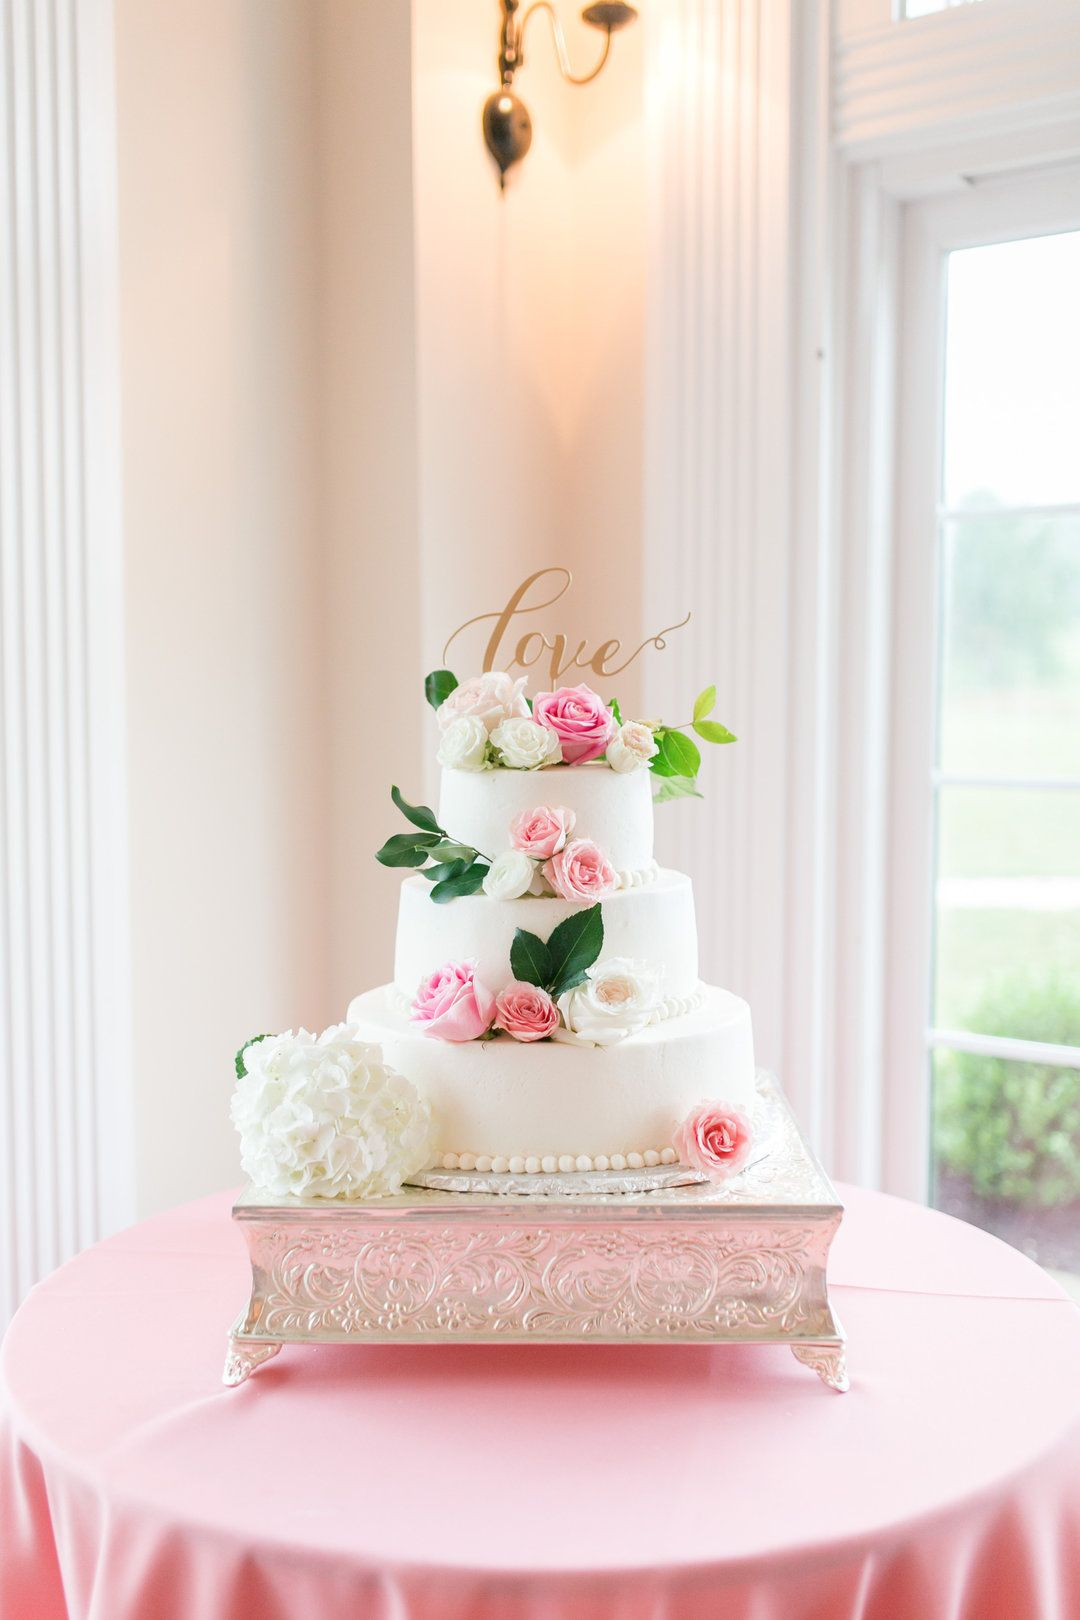 Wedding cake ideas, pink and white roses, glam silver cake stand ...